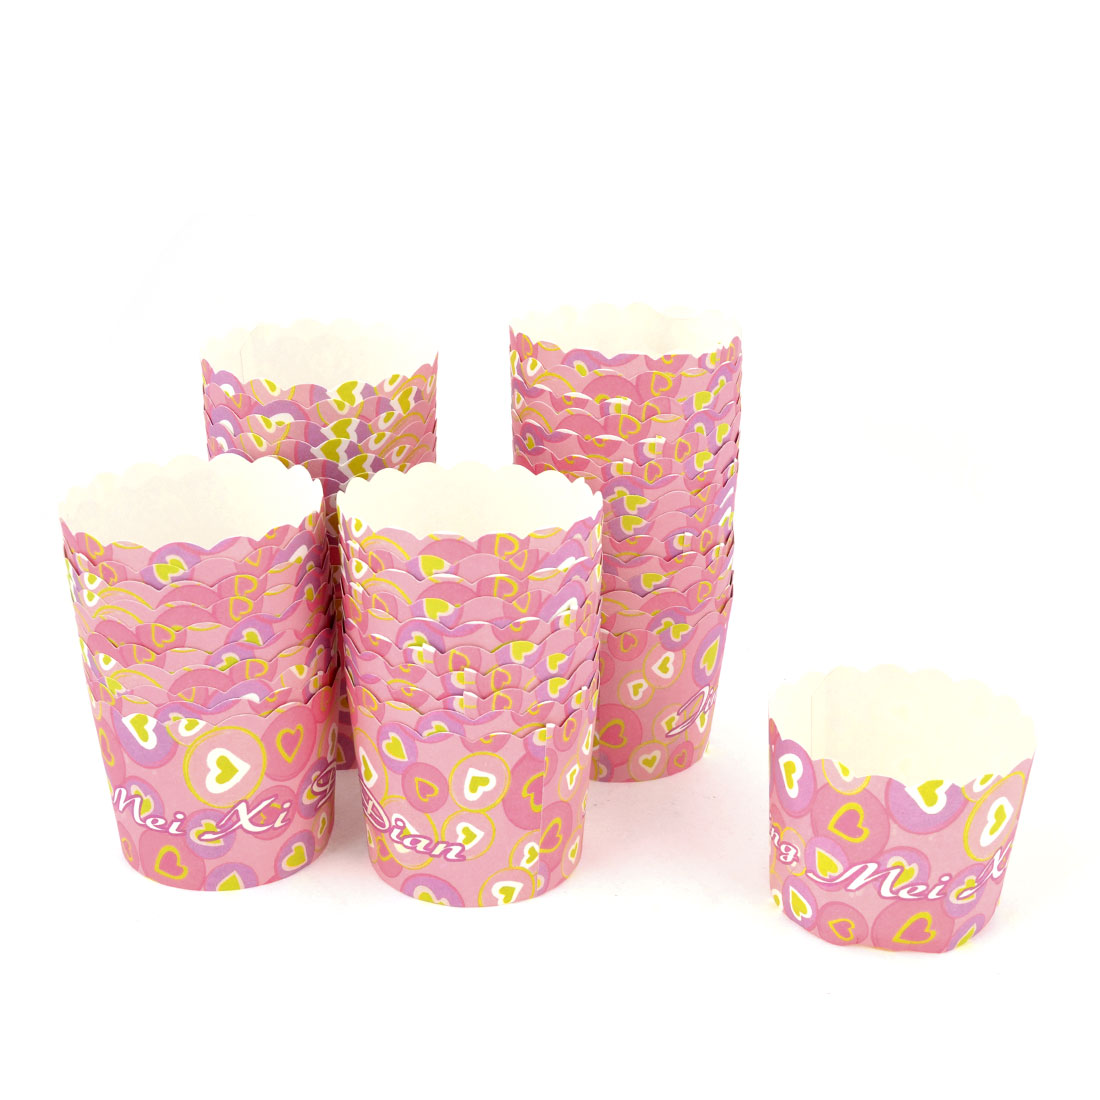 60mm Dia Muffin Cake Baking Paper Cup Tray Party Wedding Ice Cream Tool 50 Pcs